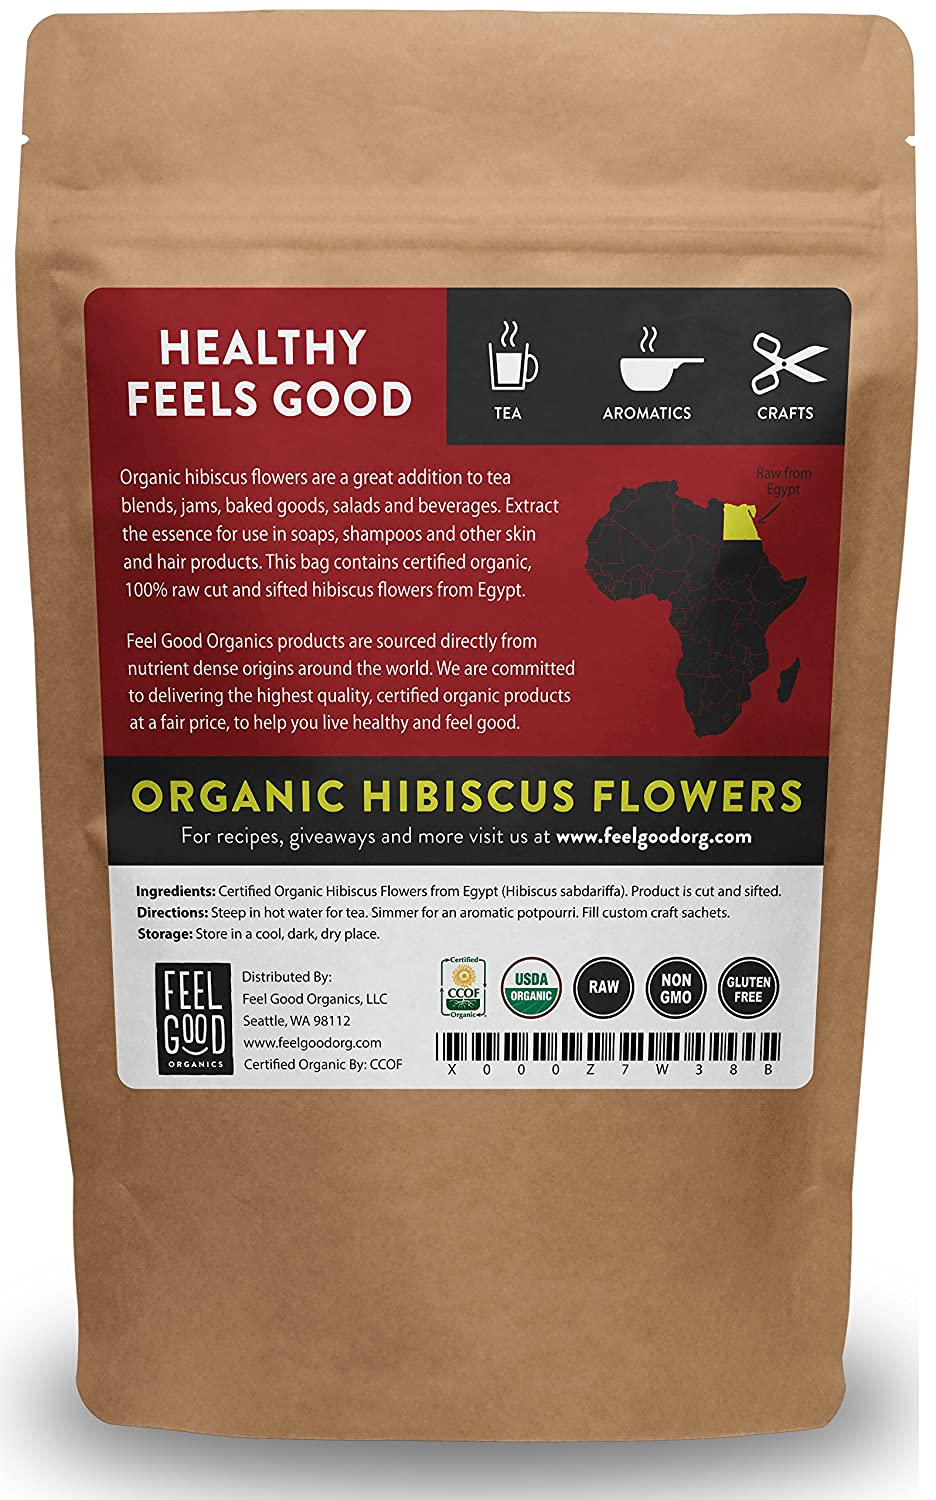 Amazon organic hibiscus flowers cut sifted 8oz amazon organic hibiscus flowers cut sifted 8oz resealable bag 100 raw from egypt by feel good organics grocery gourmet food izmirmasajfo Images